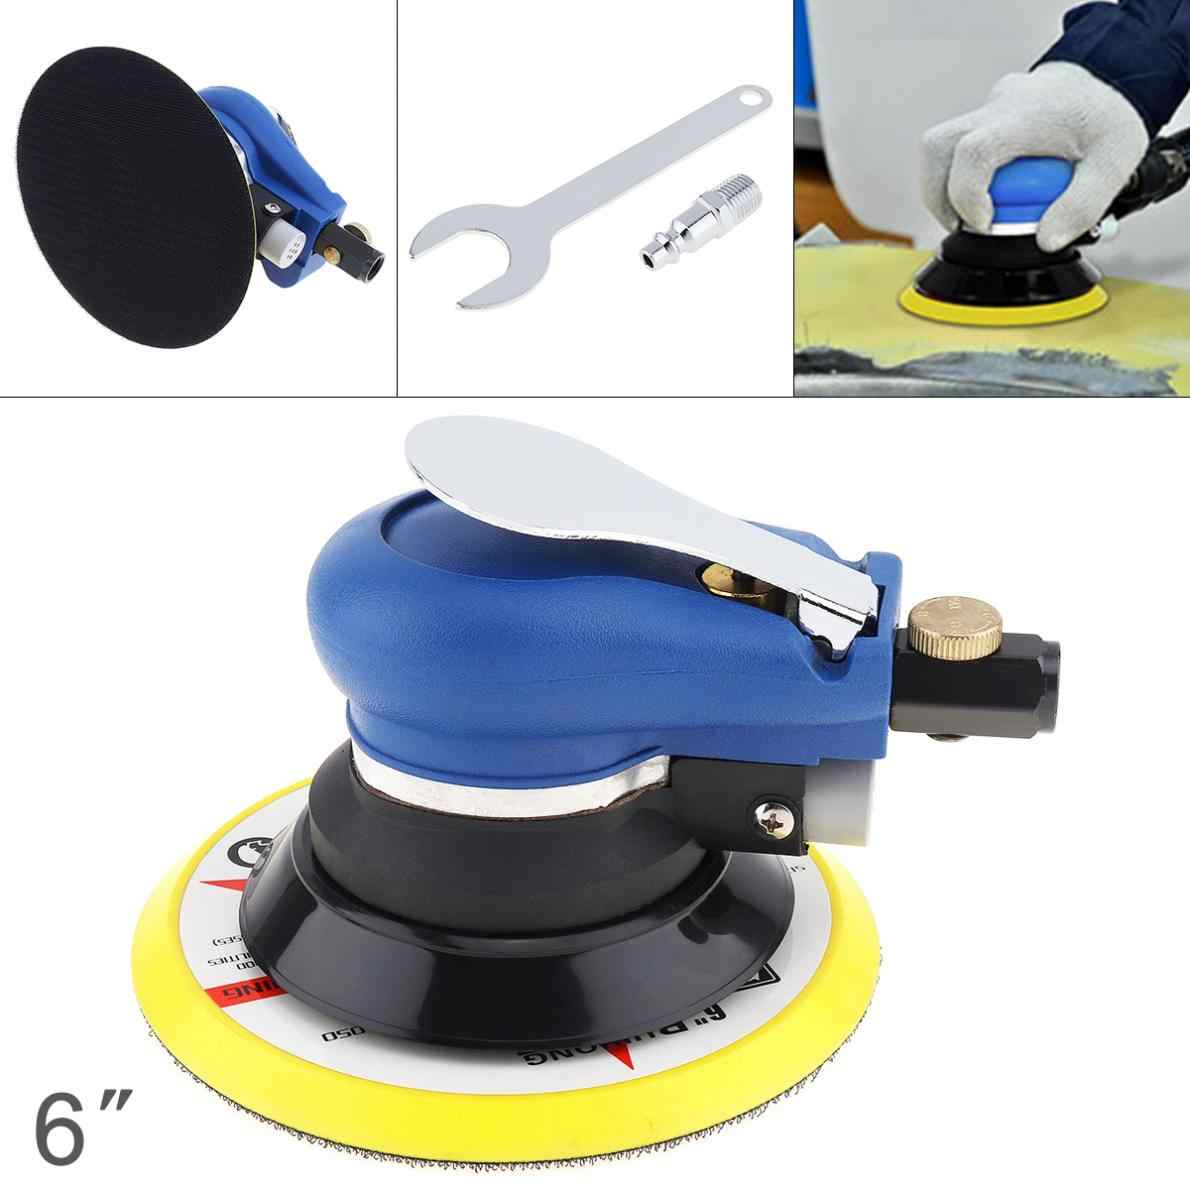 6 Inch Matte Surface 9000rpm Pneumatic Polishing Machine Random Orbital with Sander Pad for Cars Polishing / Grinding / Waxing